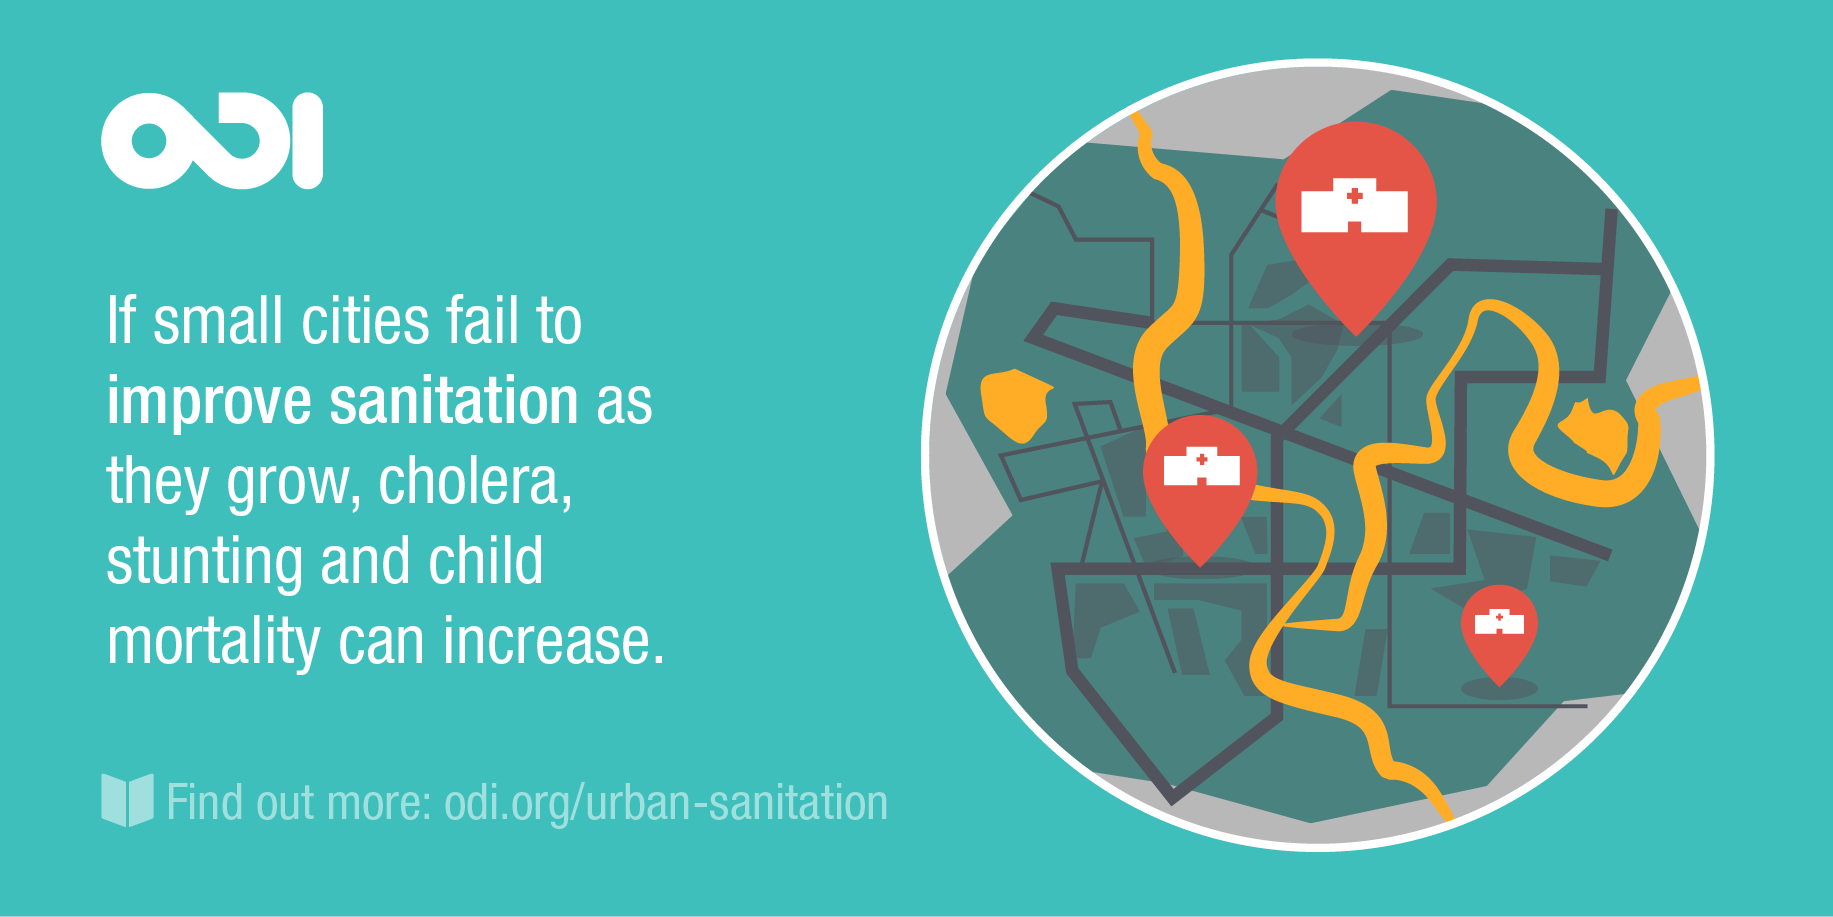 If small cities fail to improve sanitationa s they grow, cholera, stunting and child mortality can increase.